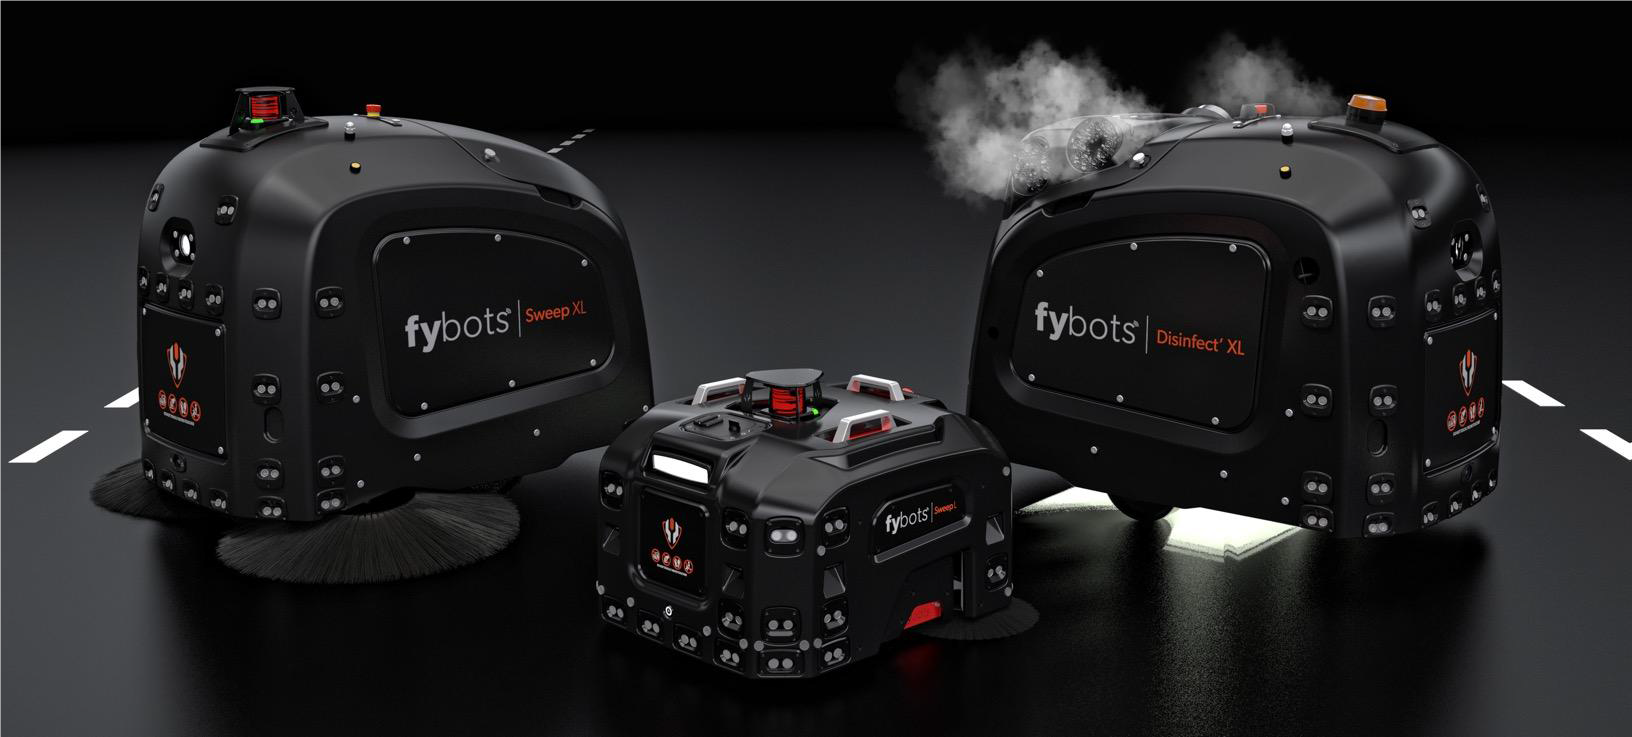 Fybots - super smart cleaning & disinfecting robots